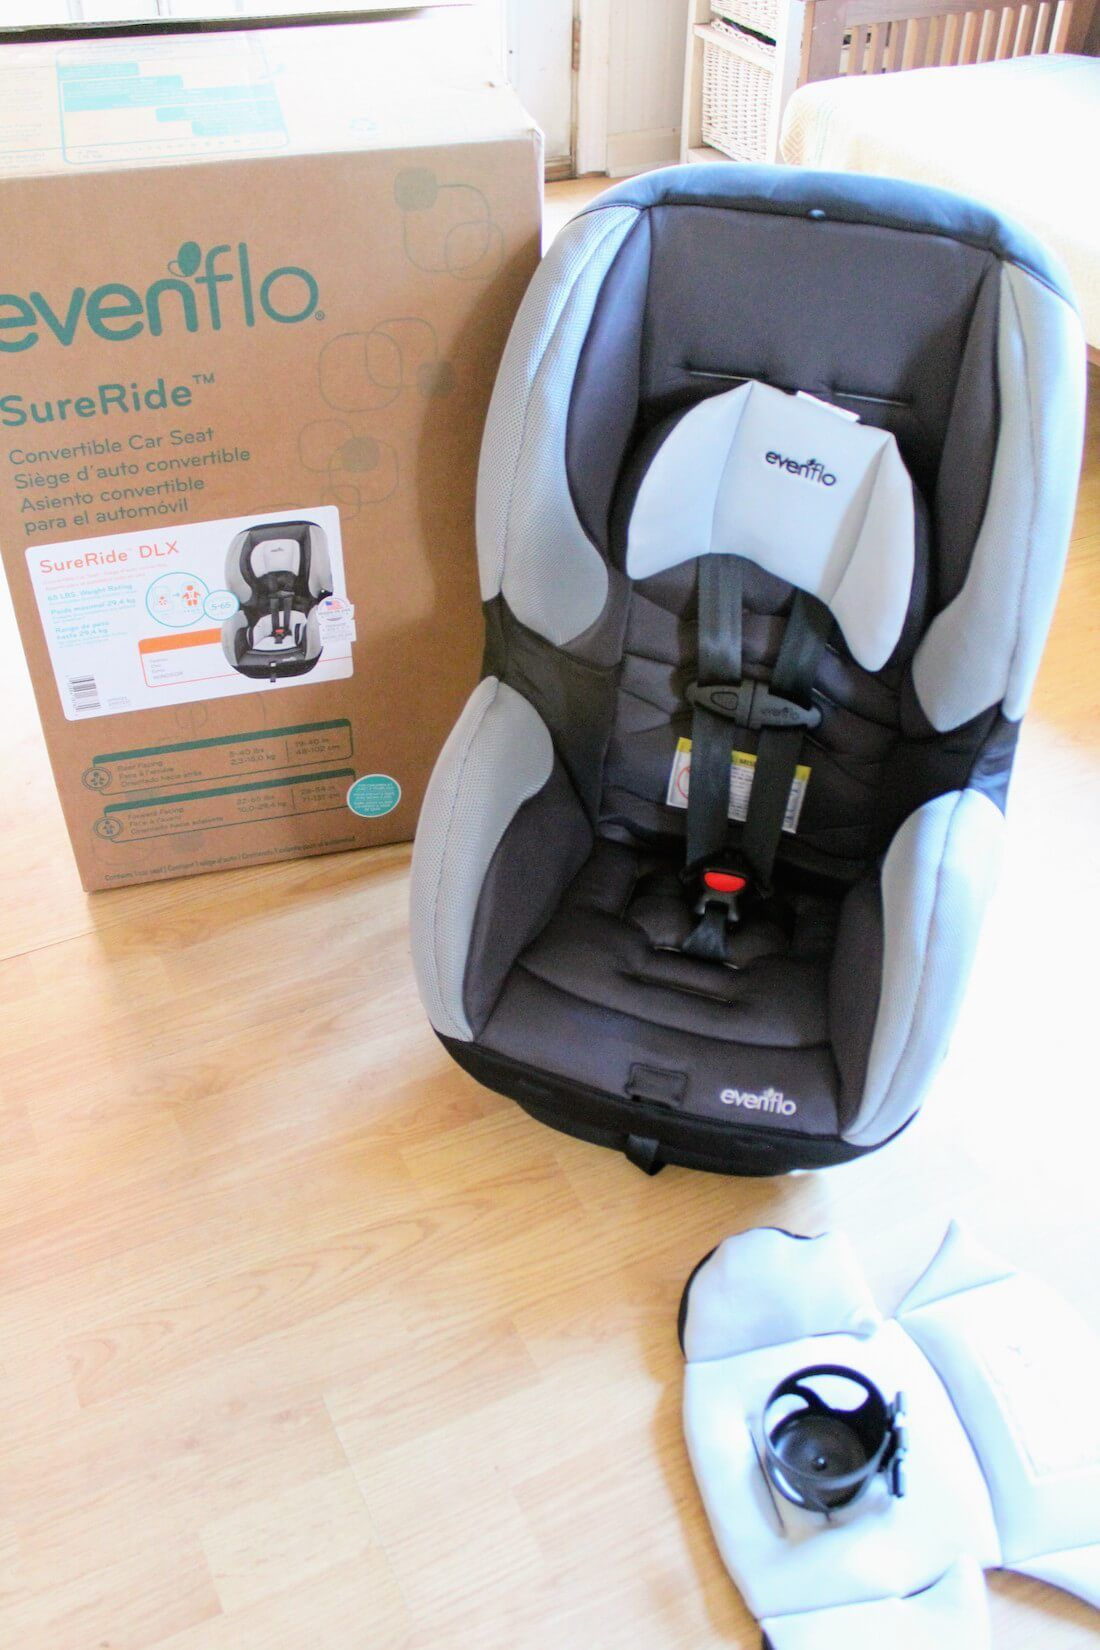 Second Car Safety On A Budget Review Of The Evenflo Sureride Dlx